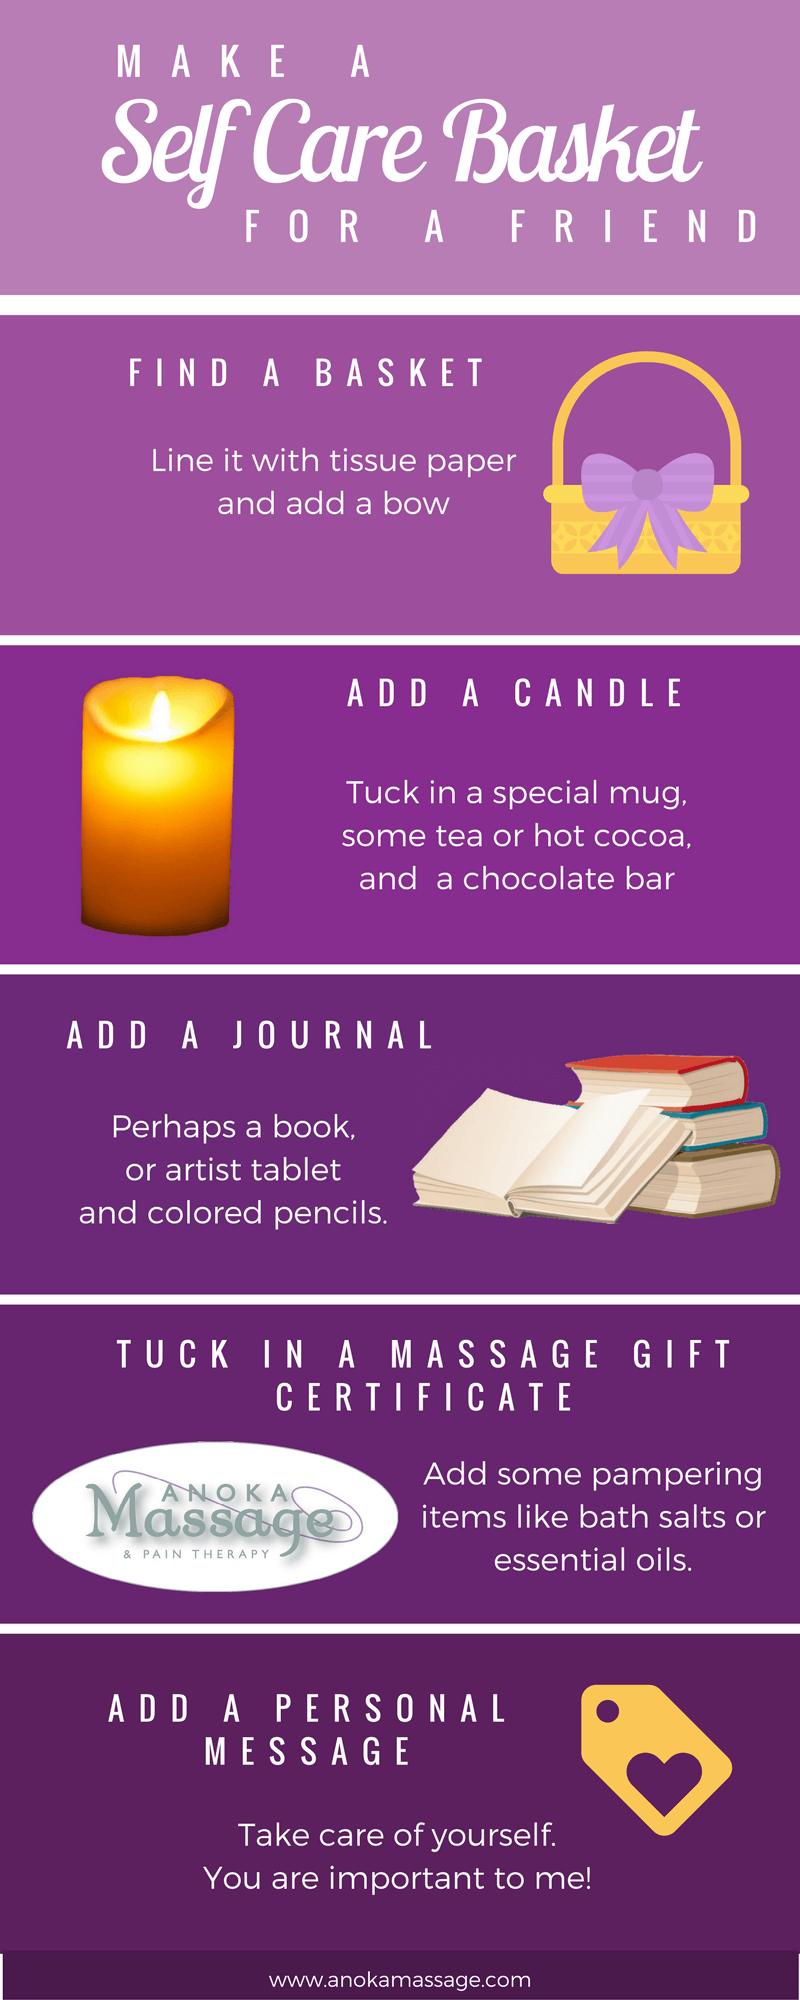 DIY Self Care Gift Baskets » Anoka Massage and Pain Therapy